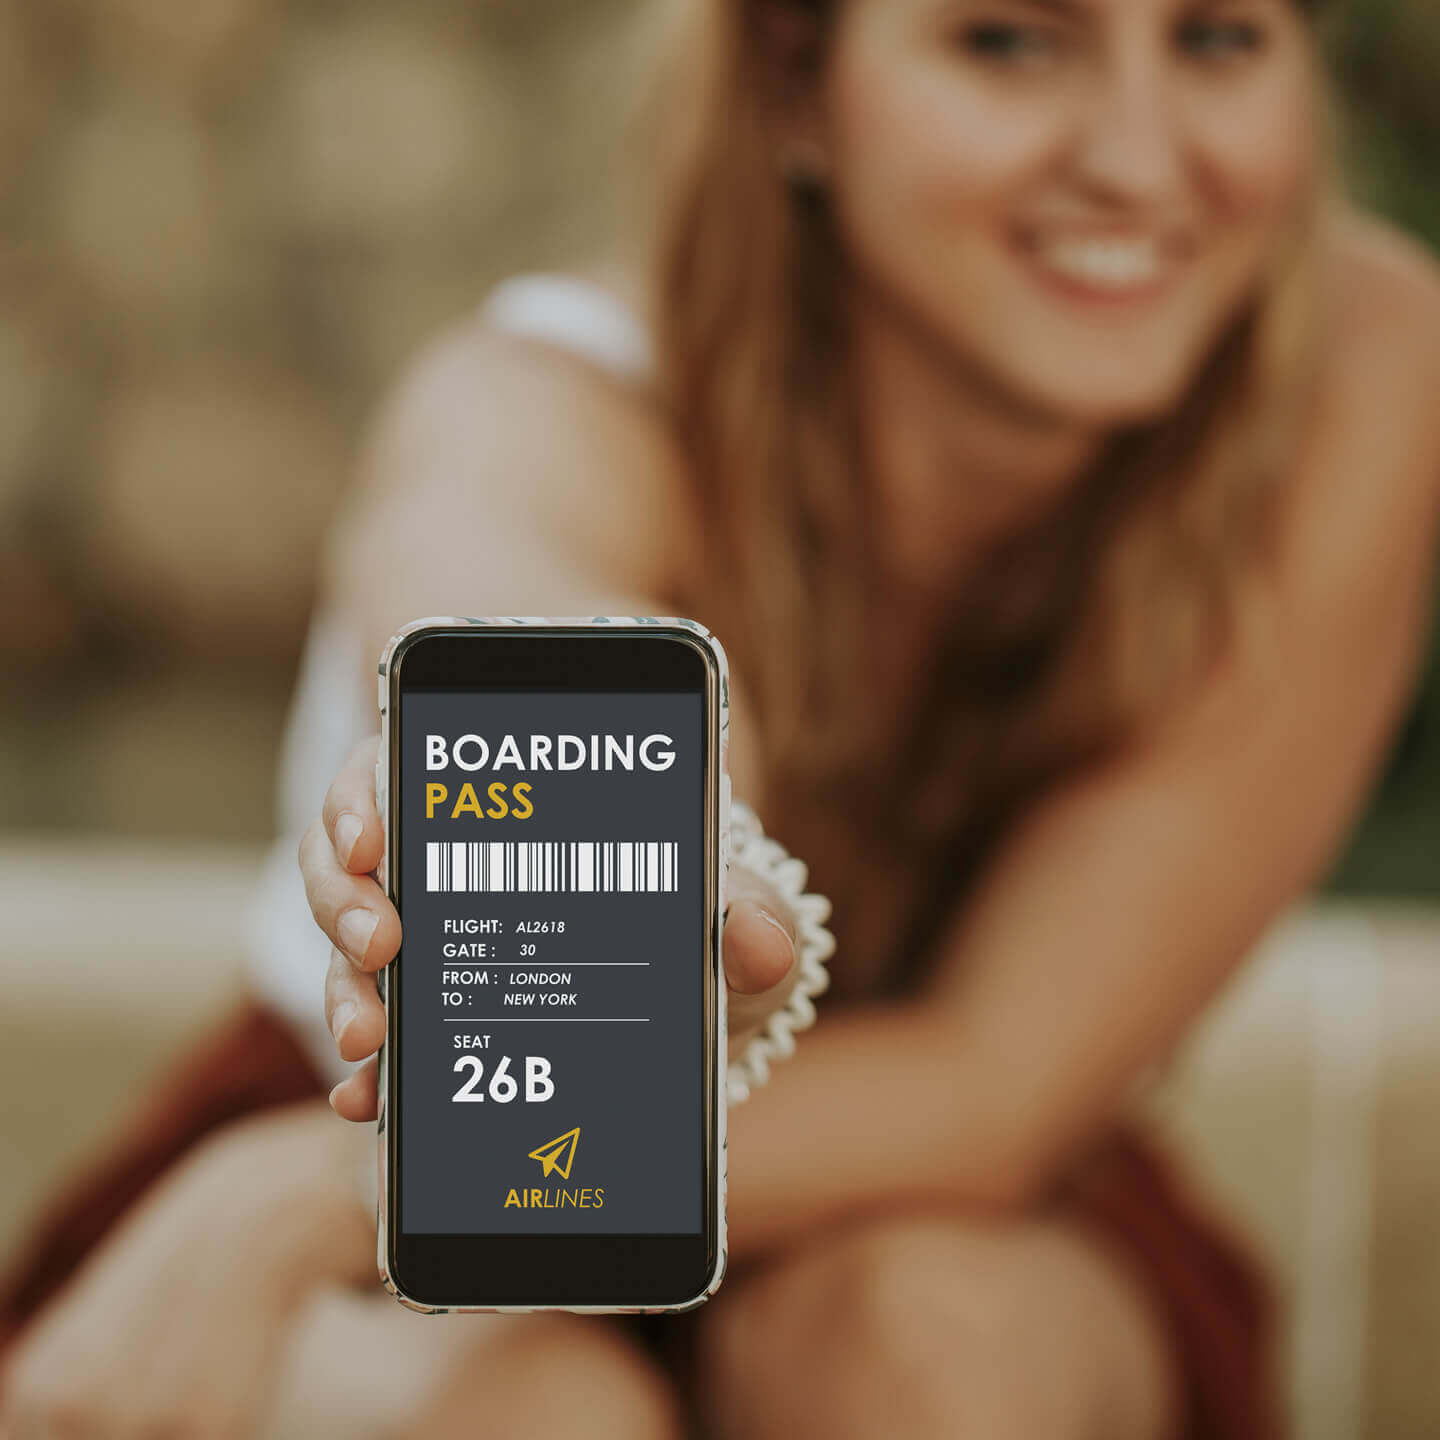 ChargeBox keeps passengers devices changed so they can still access their boarding passes